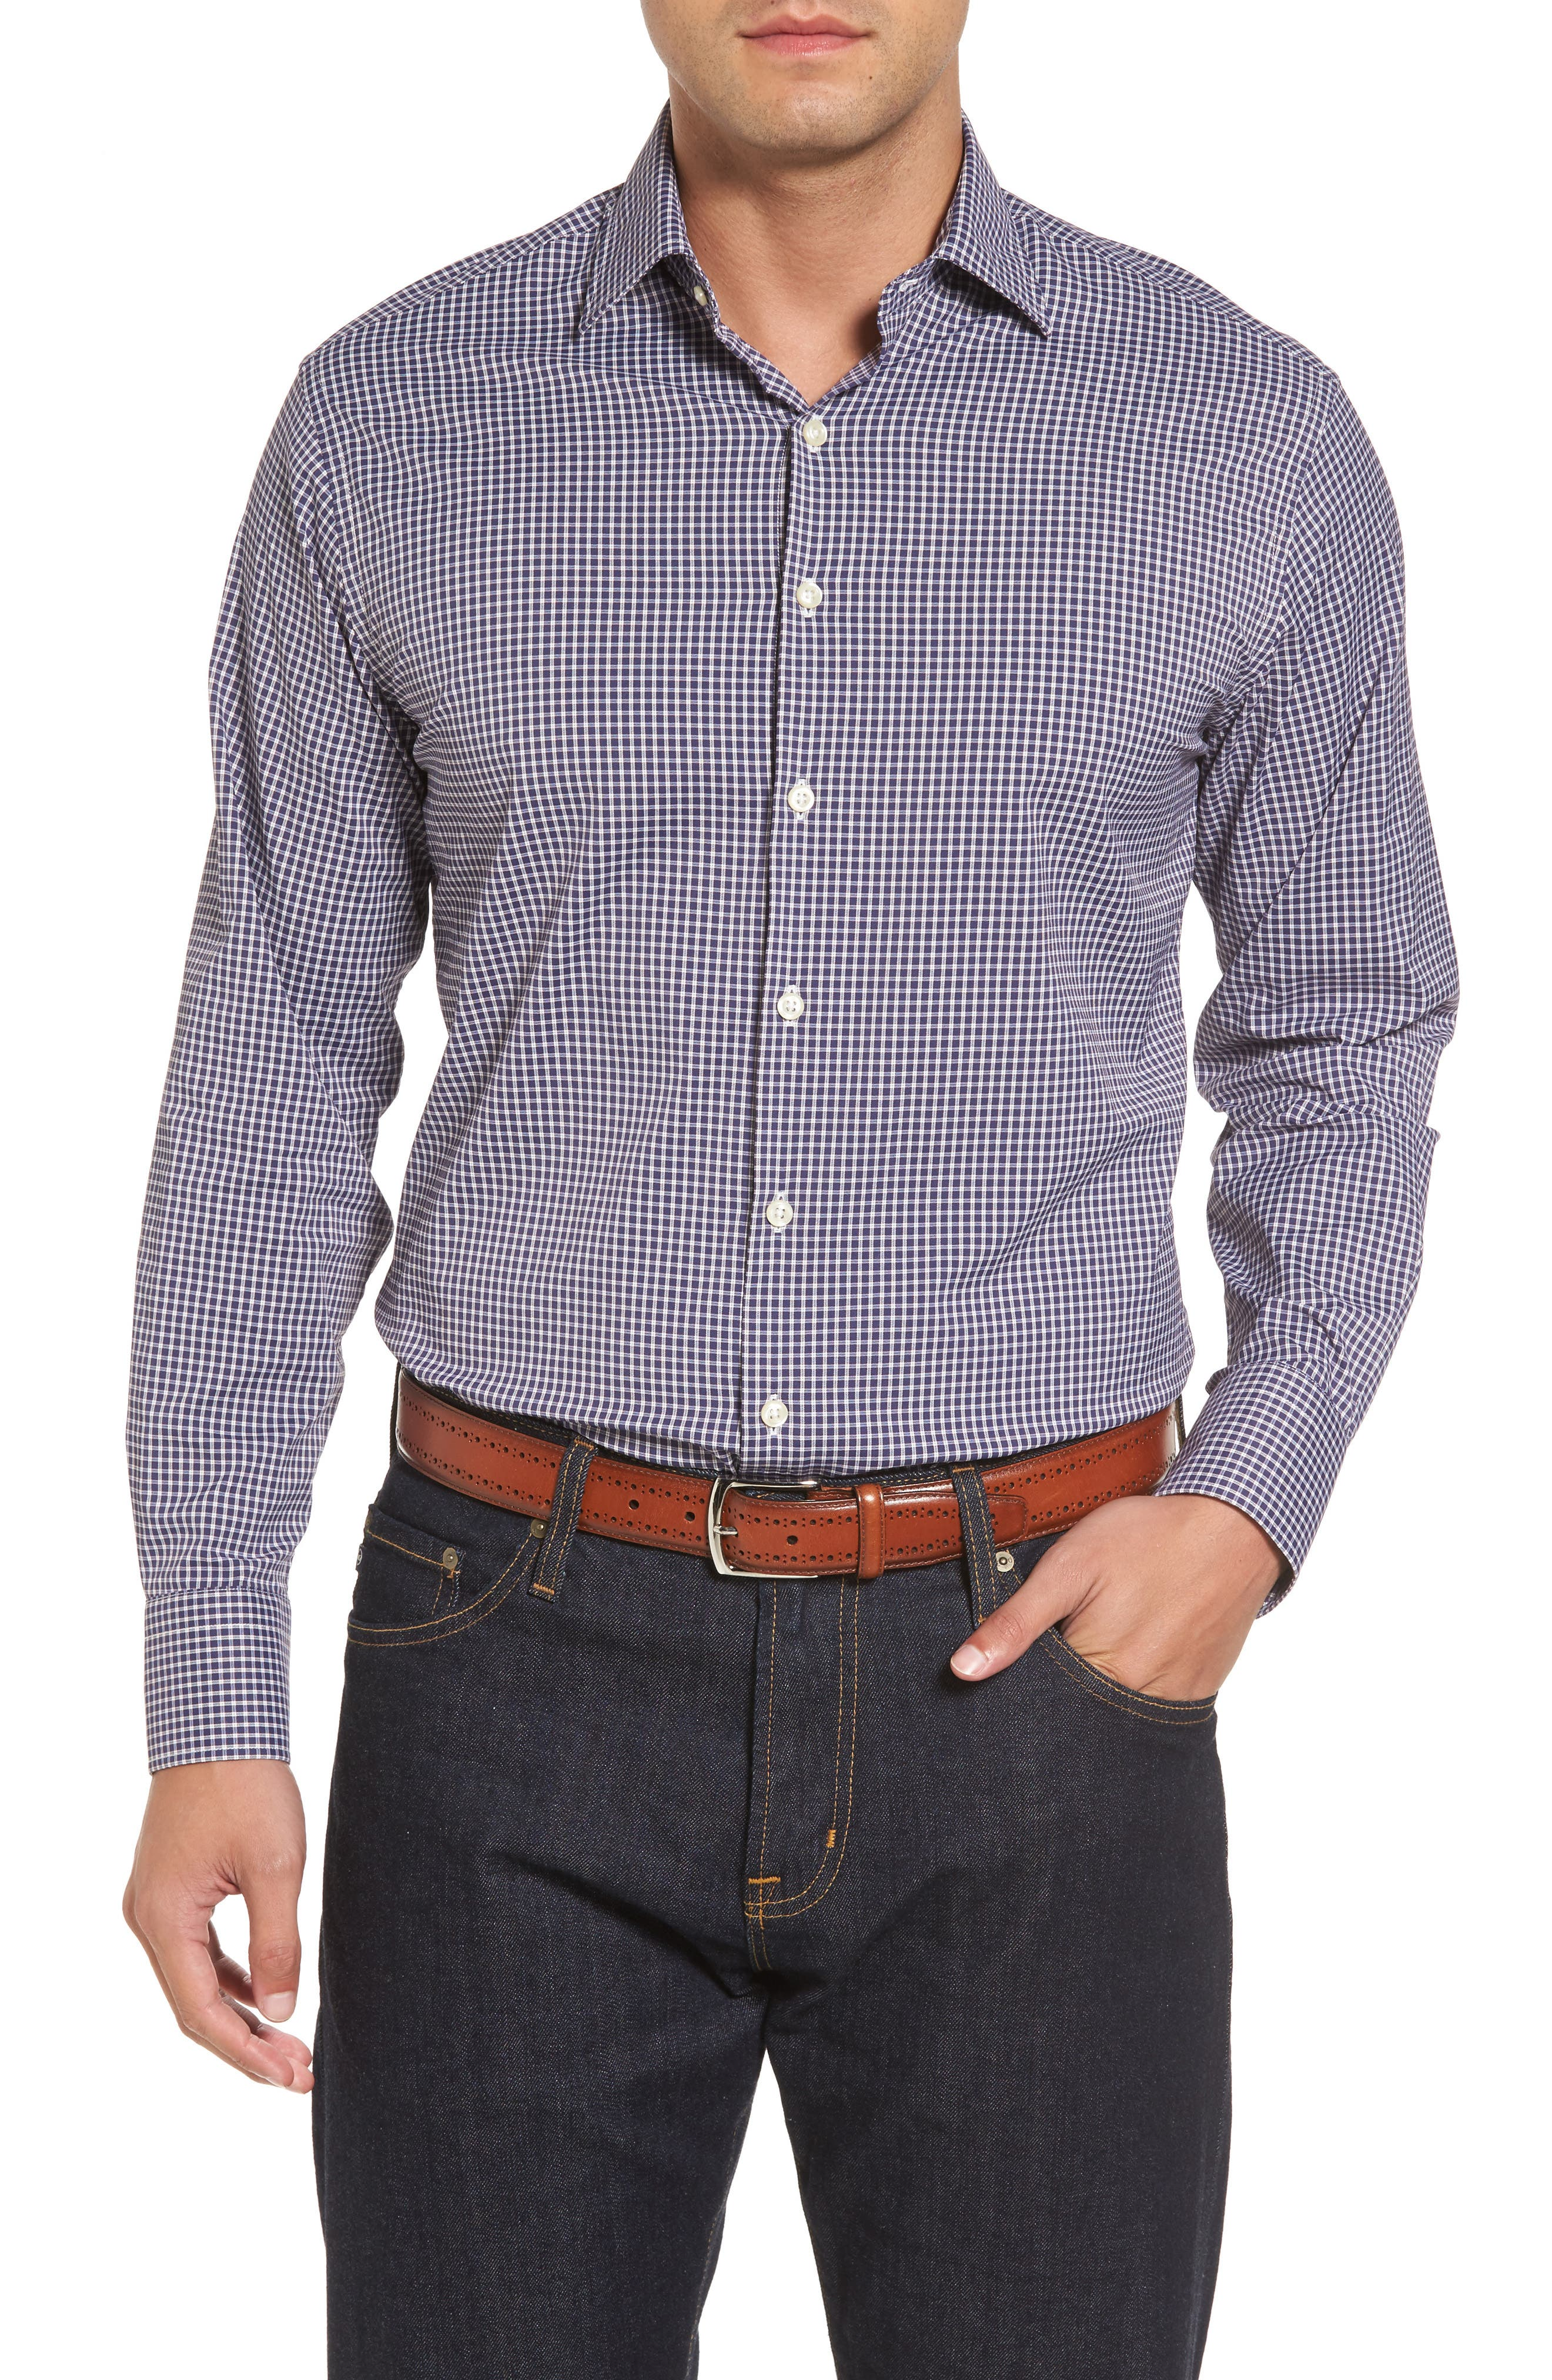 Main Image - Peter Millar Statler Regular Fit Check Performance Sport Shirt